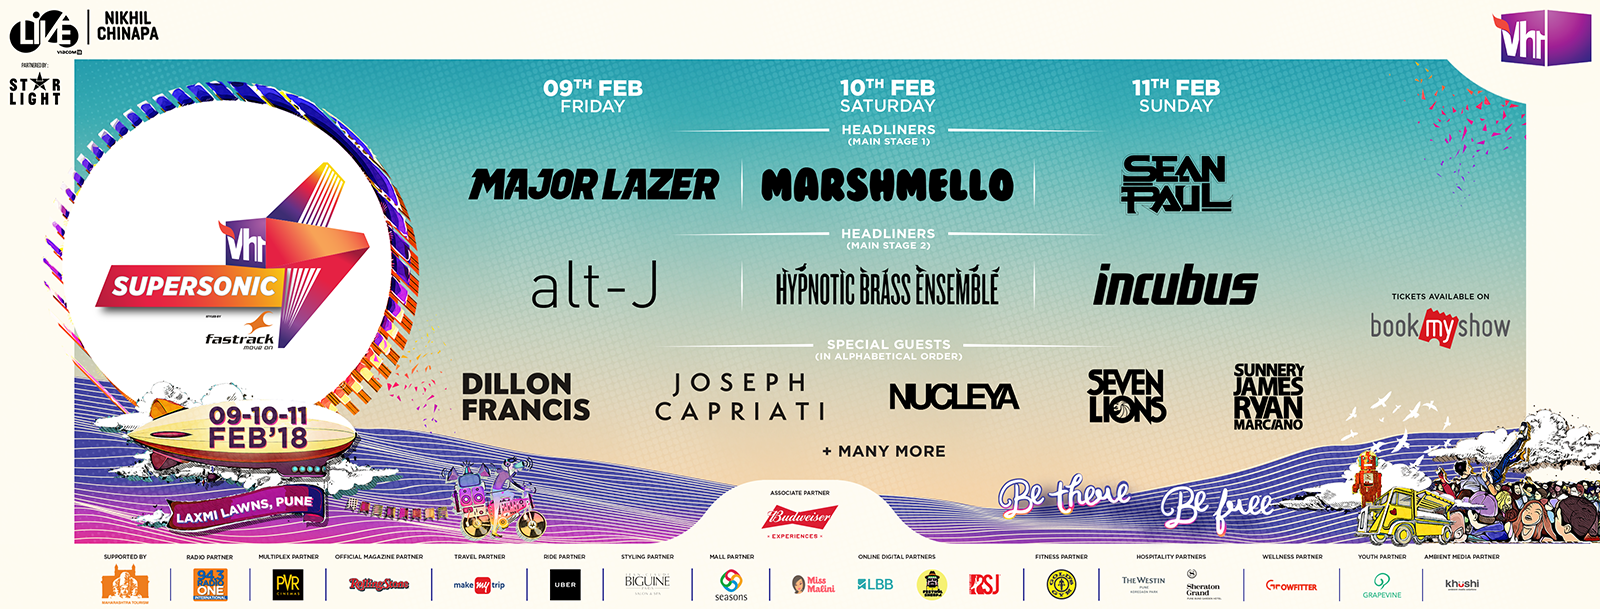 Vh1 Supersonic 2018, Pune